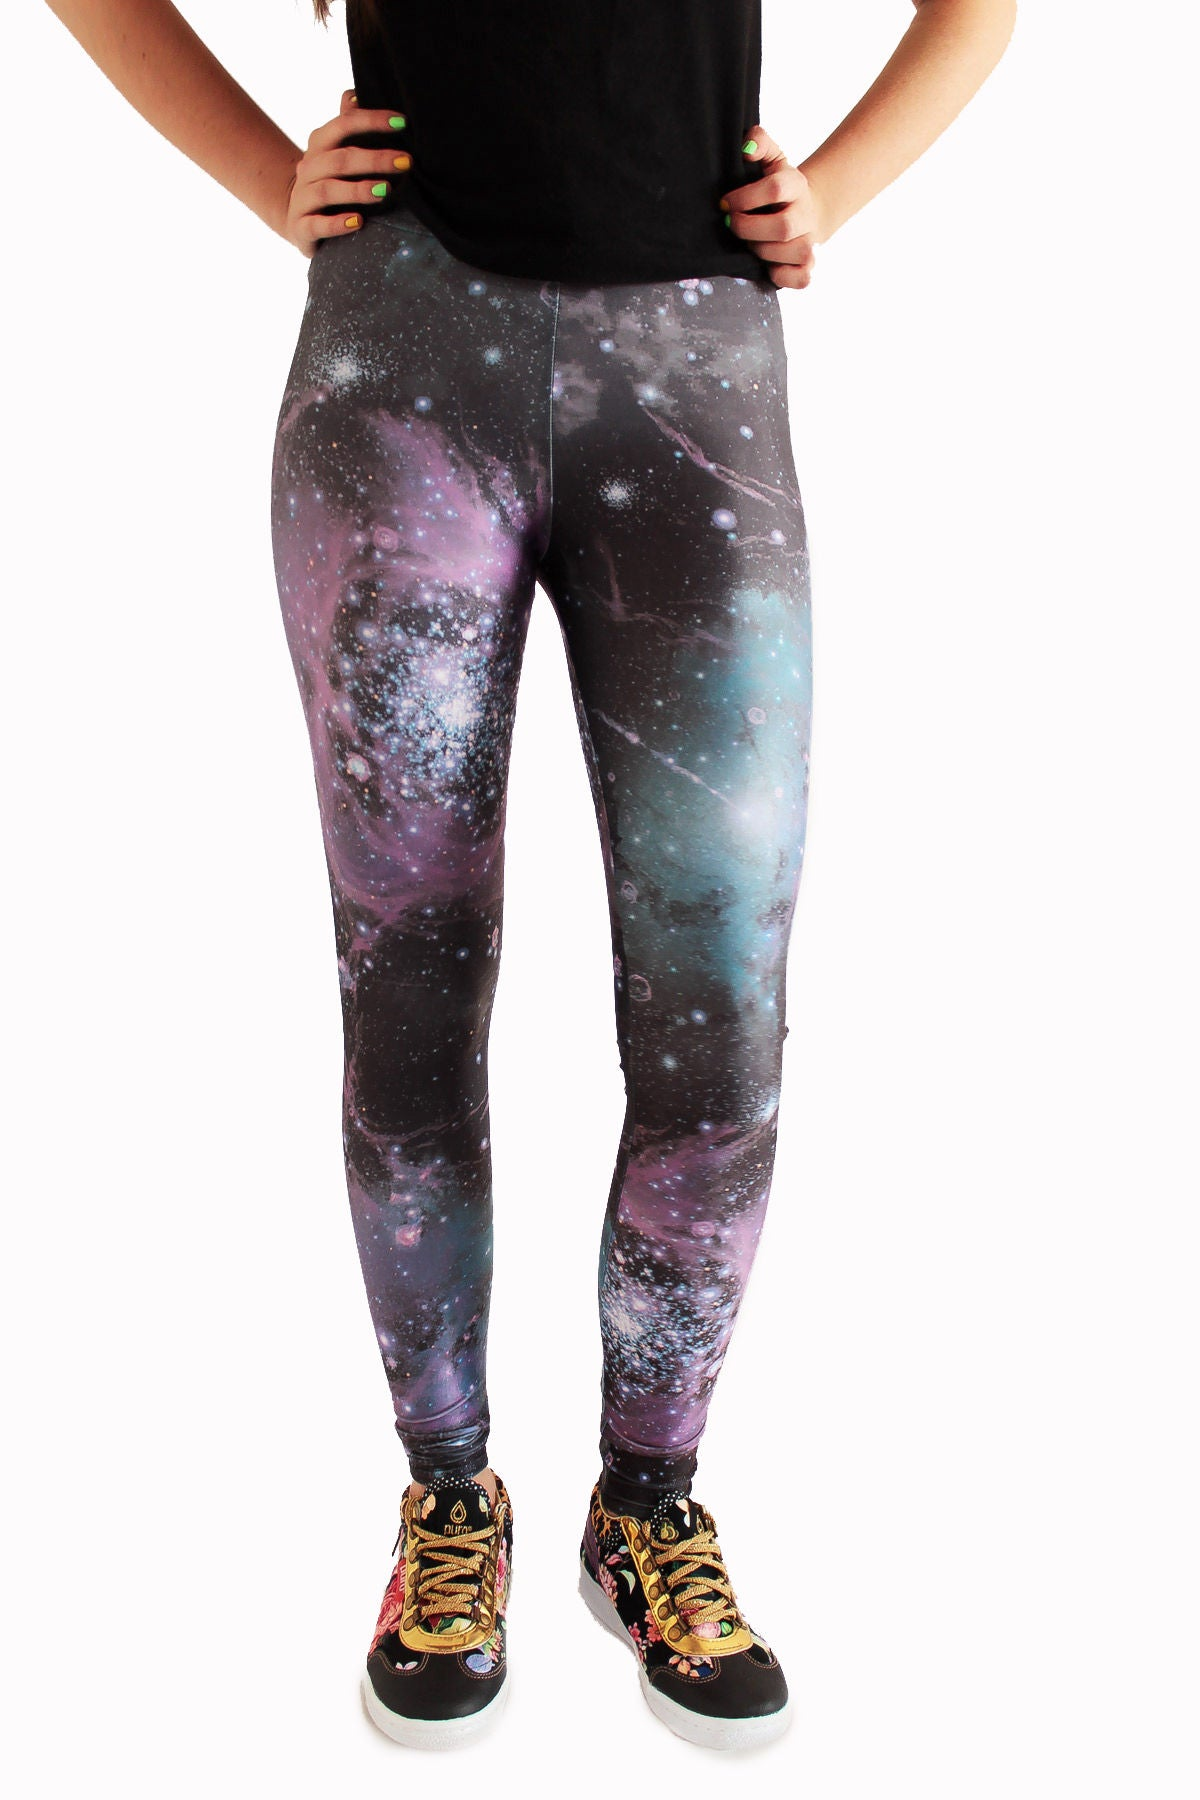 Galaxy Leggings | Galaxia Leggings-Leggings-Eat me!